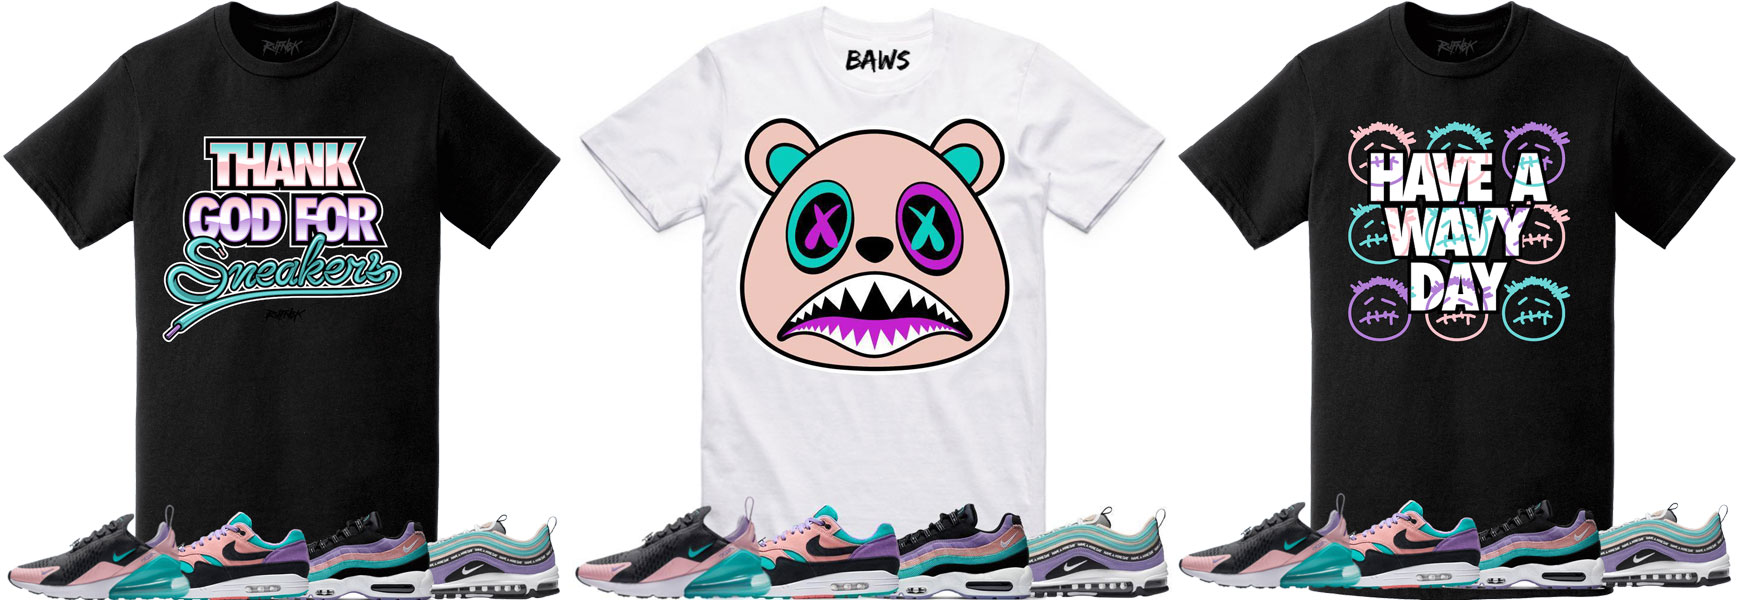 have-a-nike-day-sneaker-tees-shirts